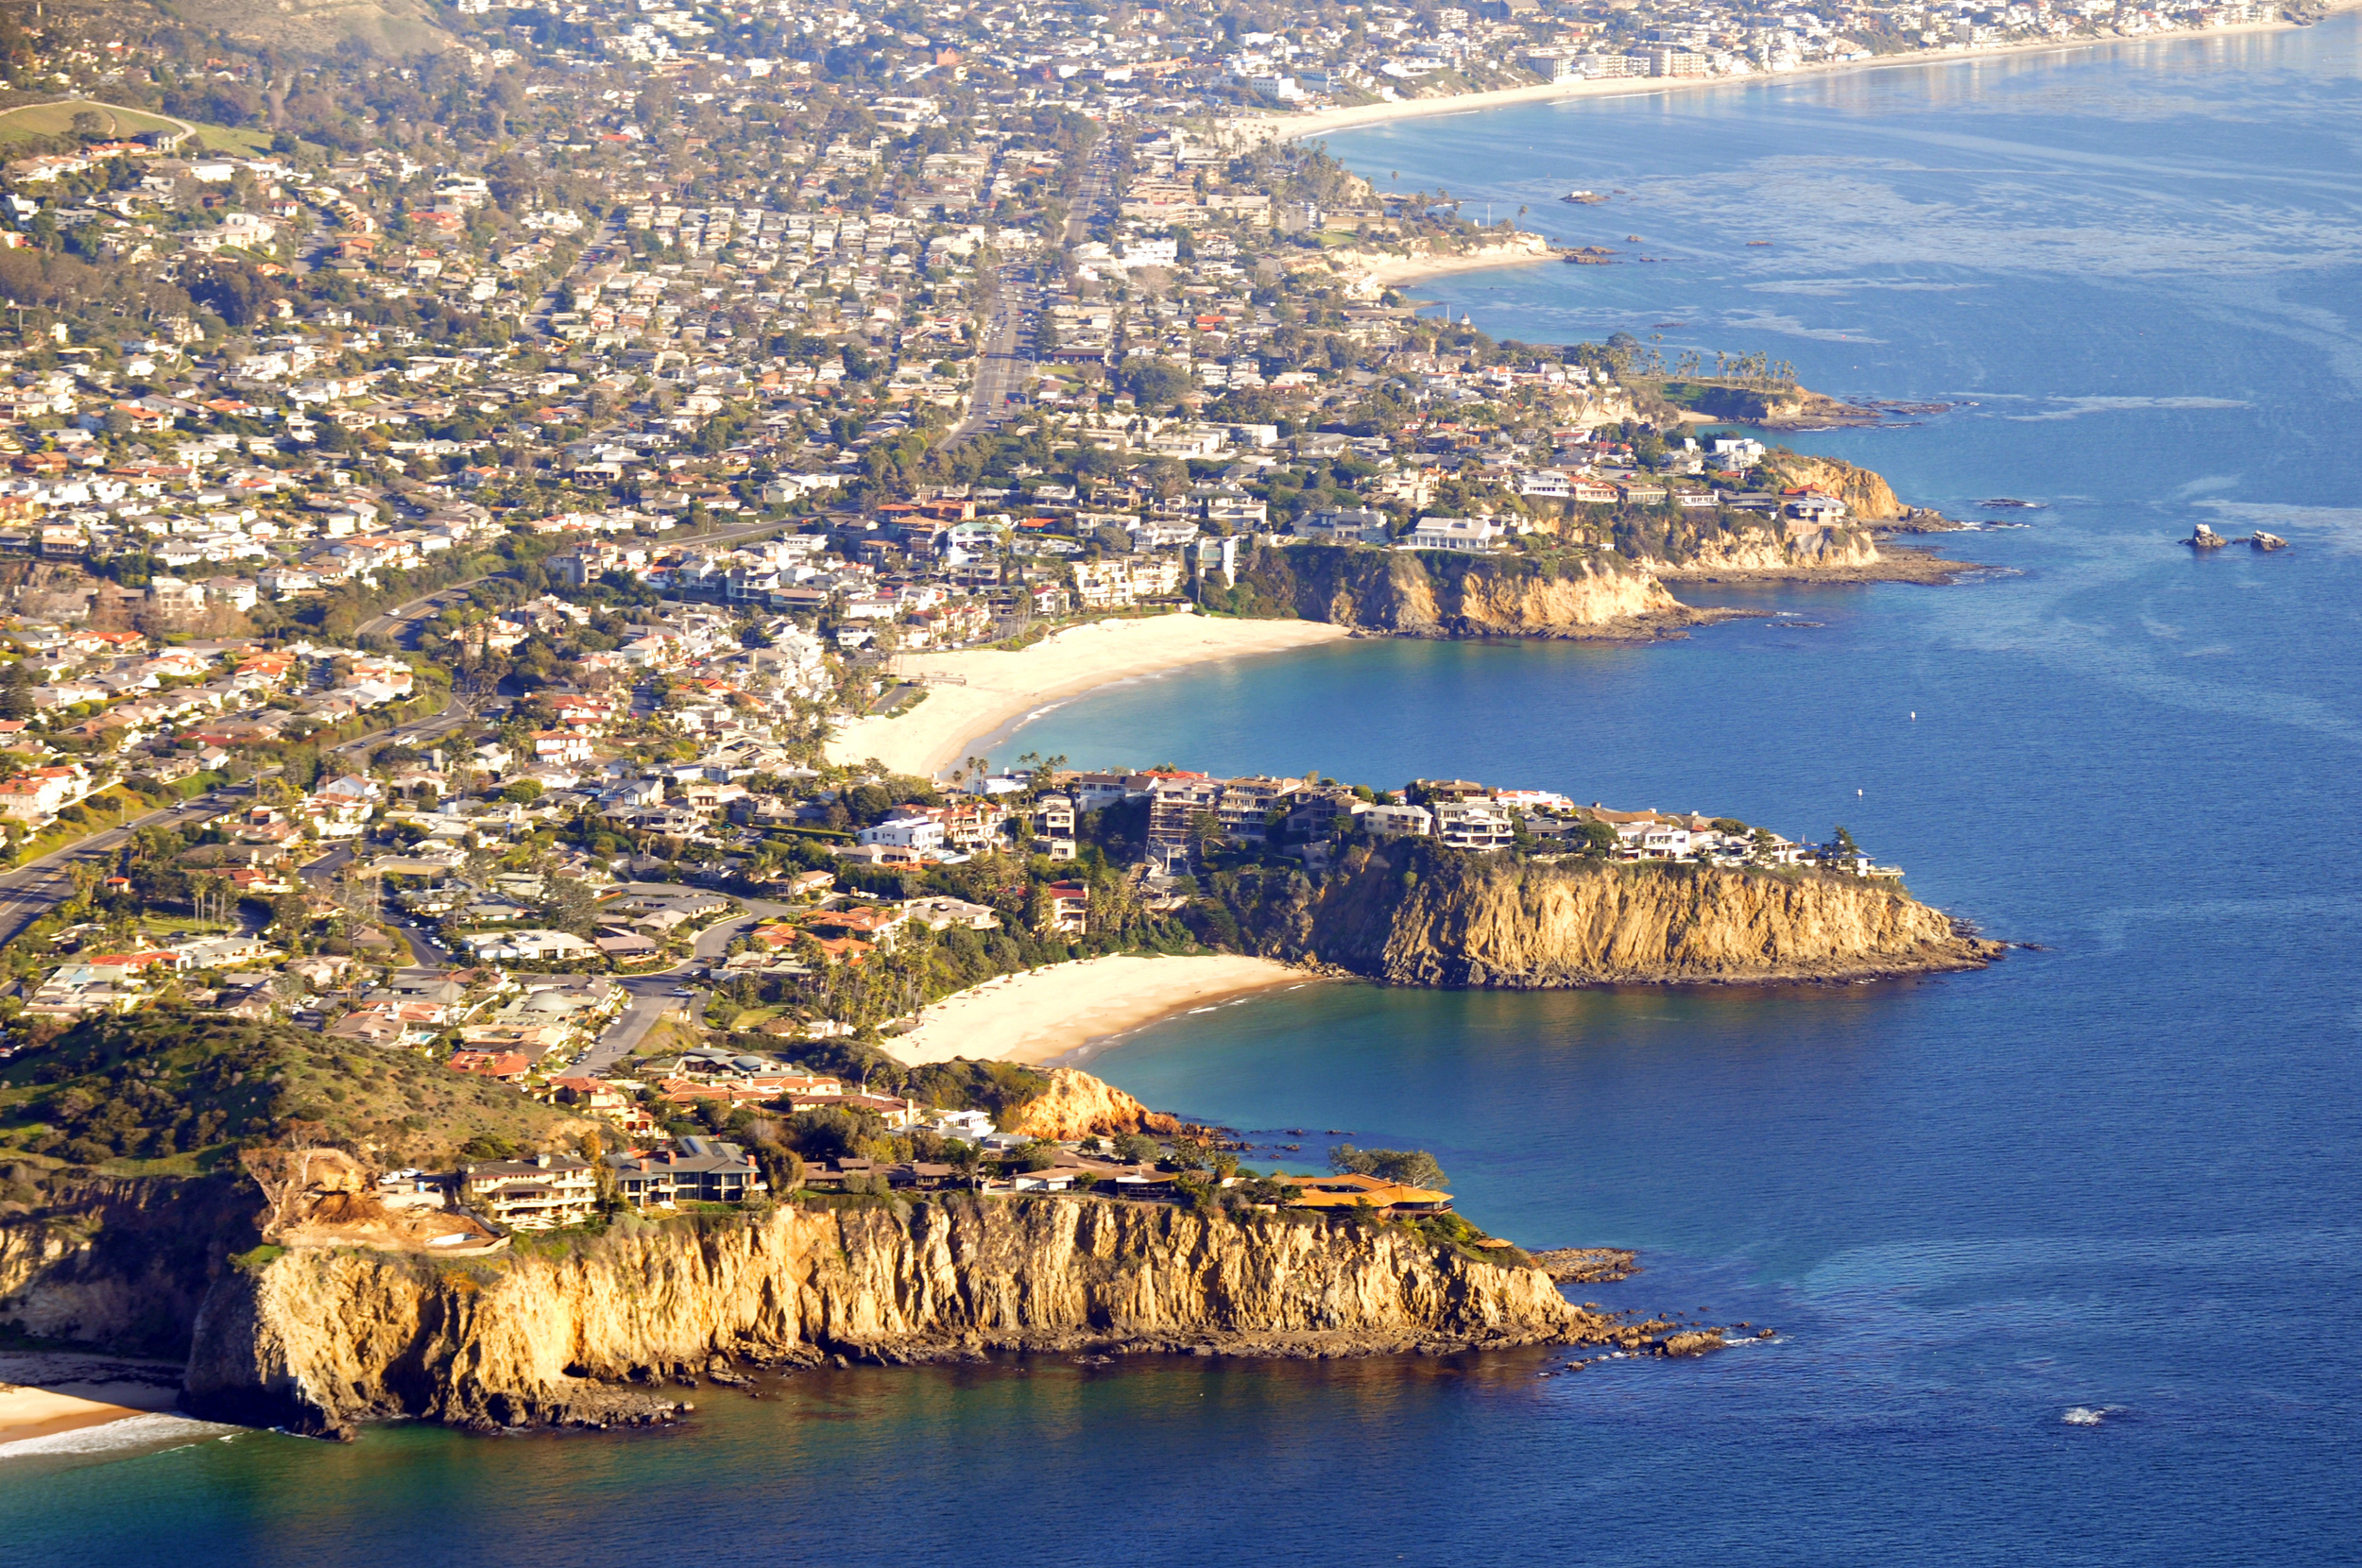 North_Laguna_Beach_Photo_D_Ramey_Logan.jpg